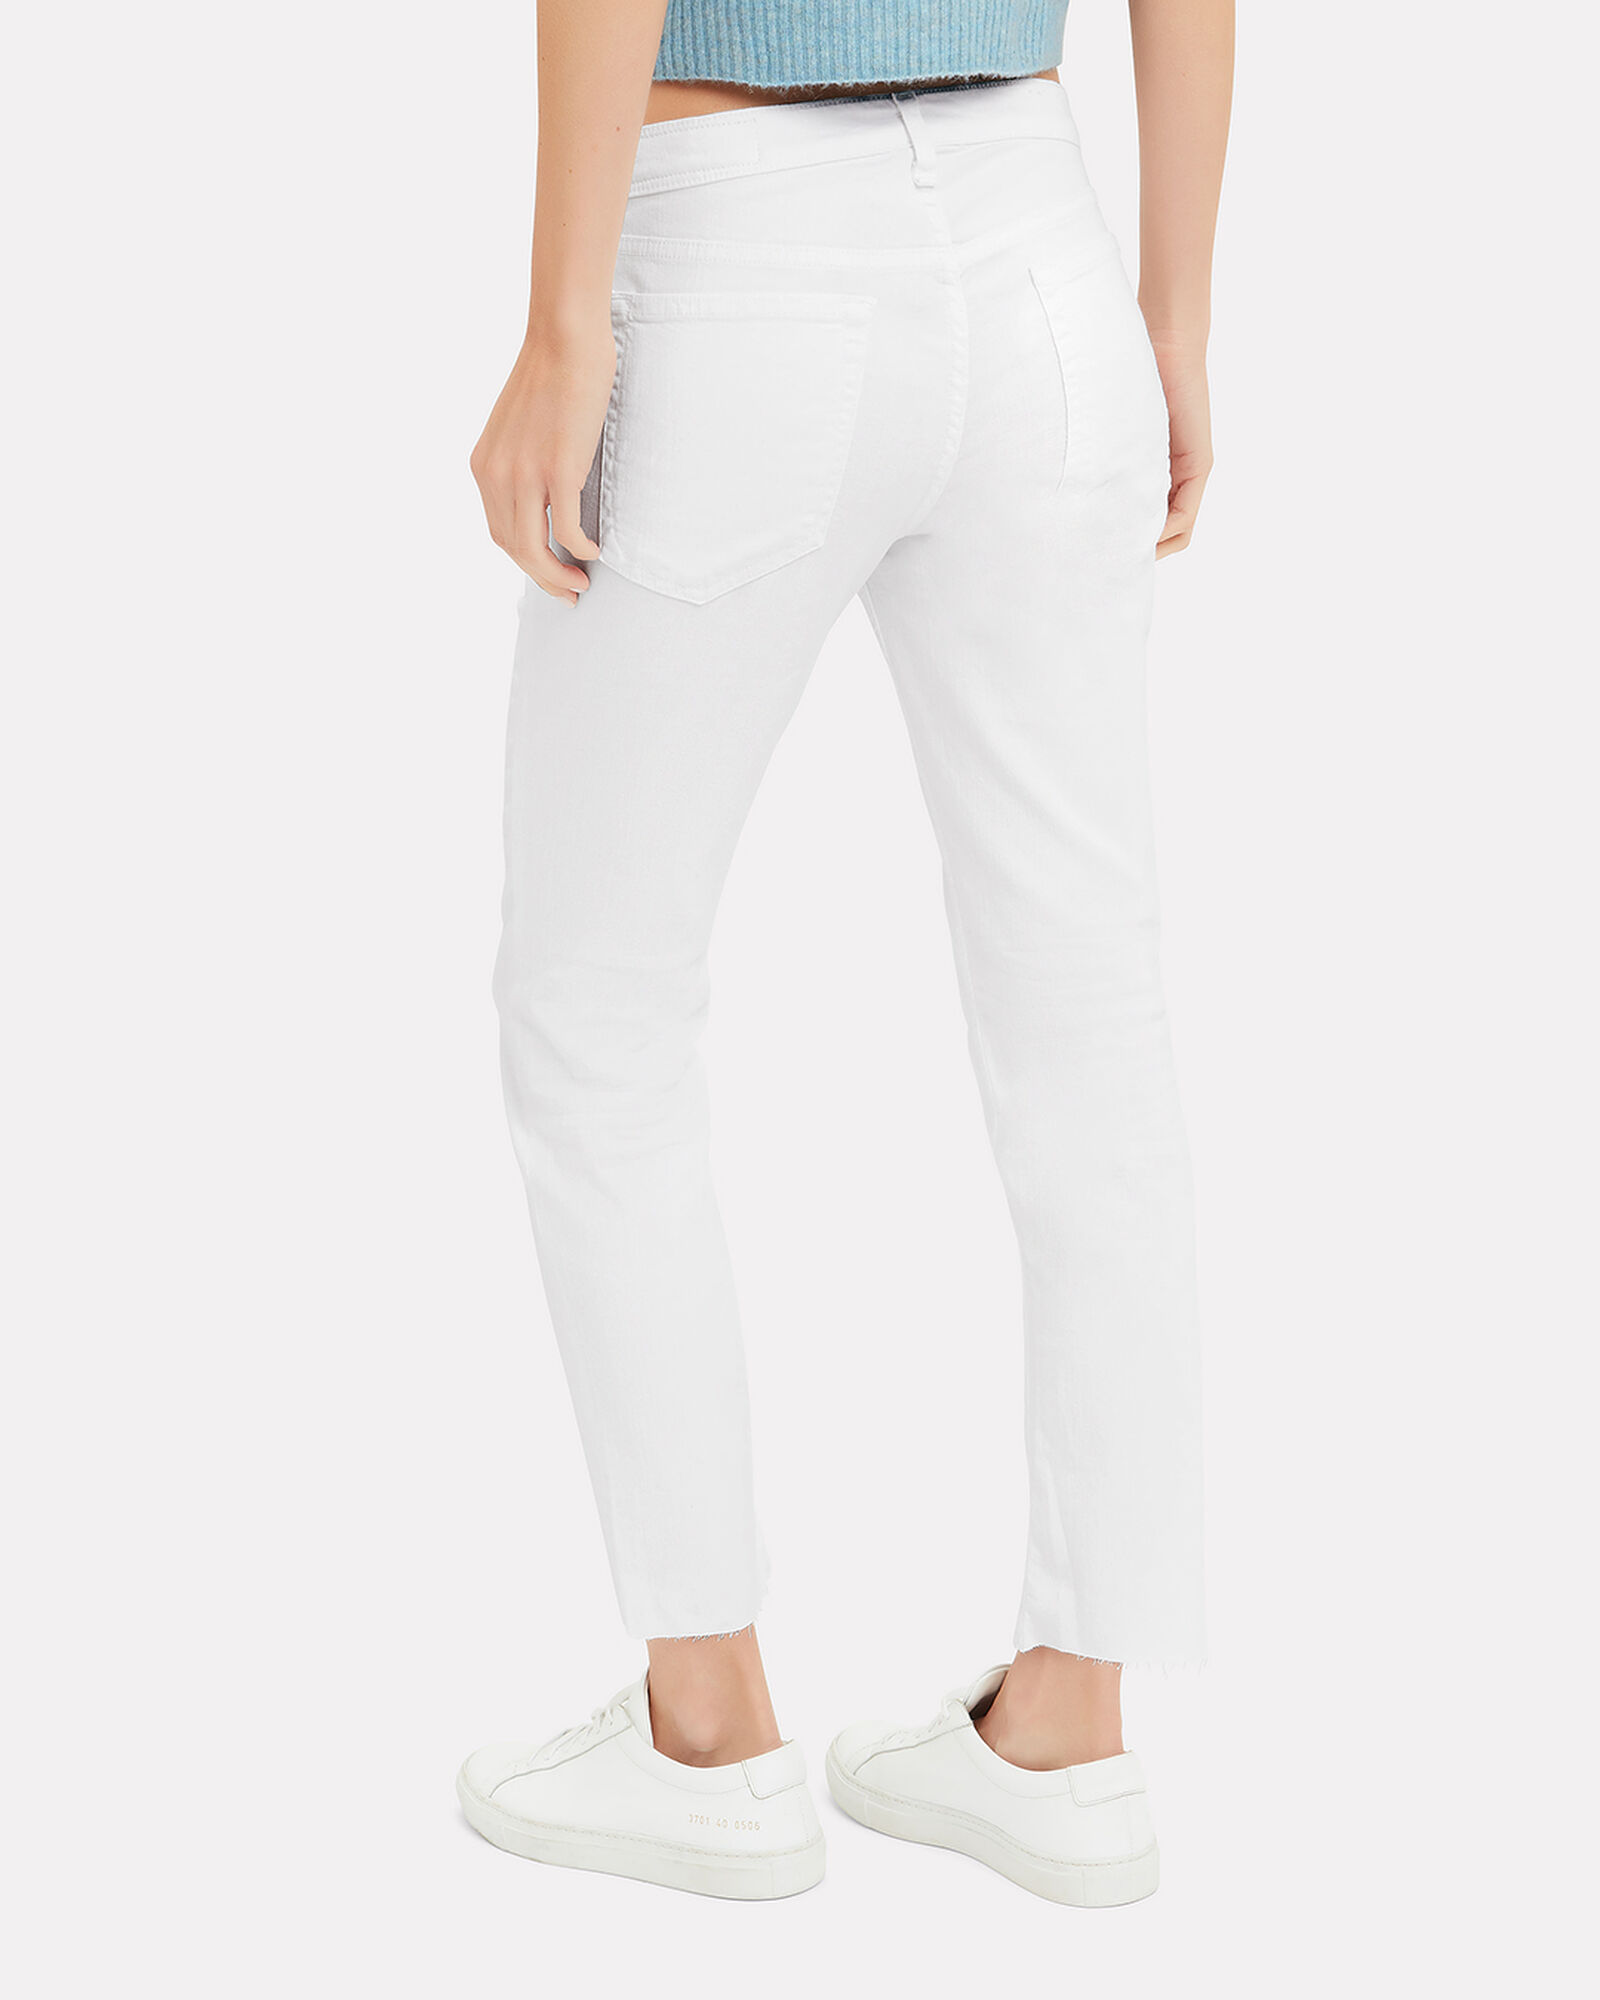 Dre Skinny Jeans, WHITE DENIM, hi-res